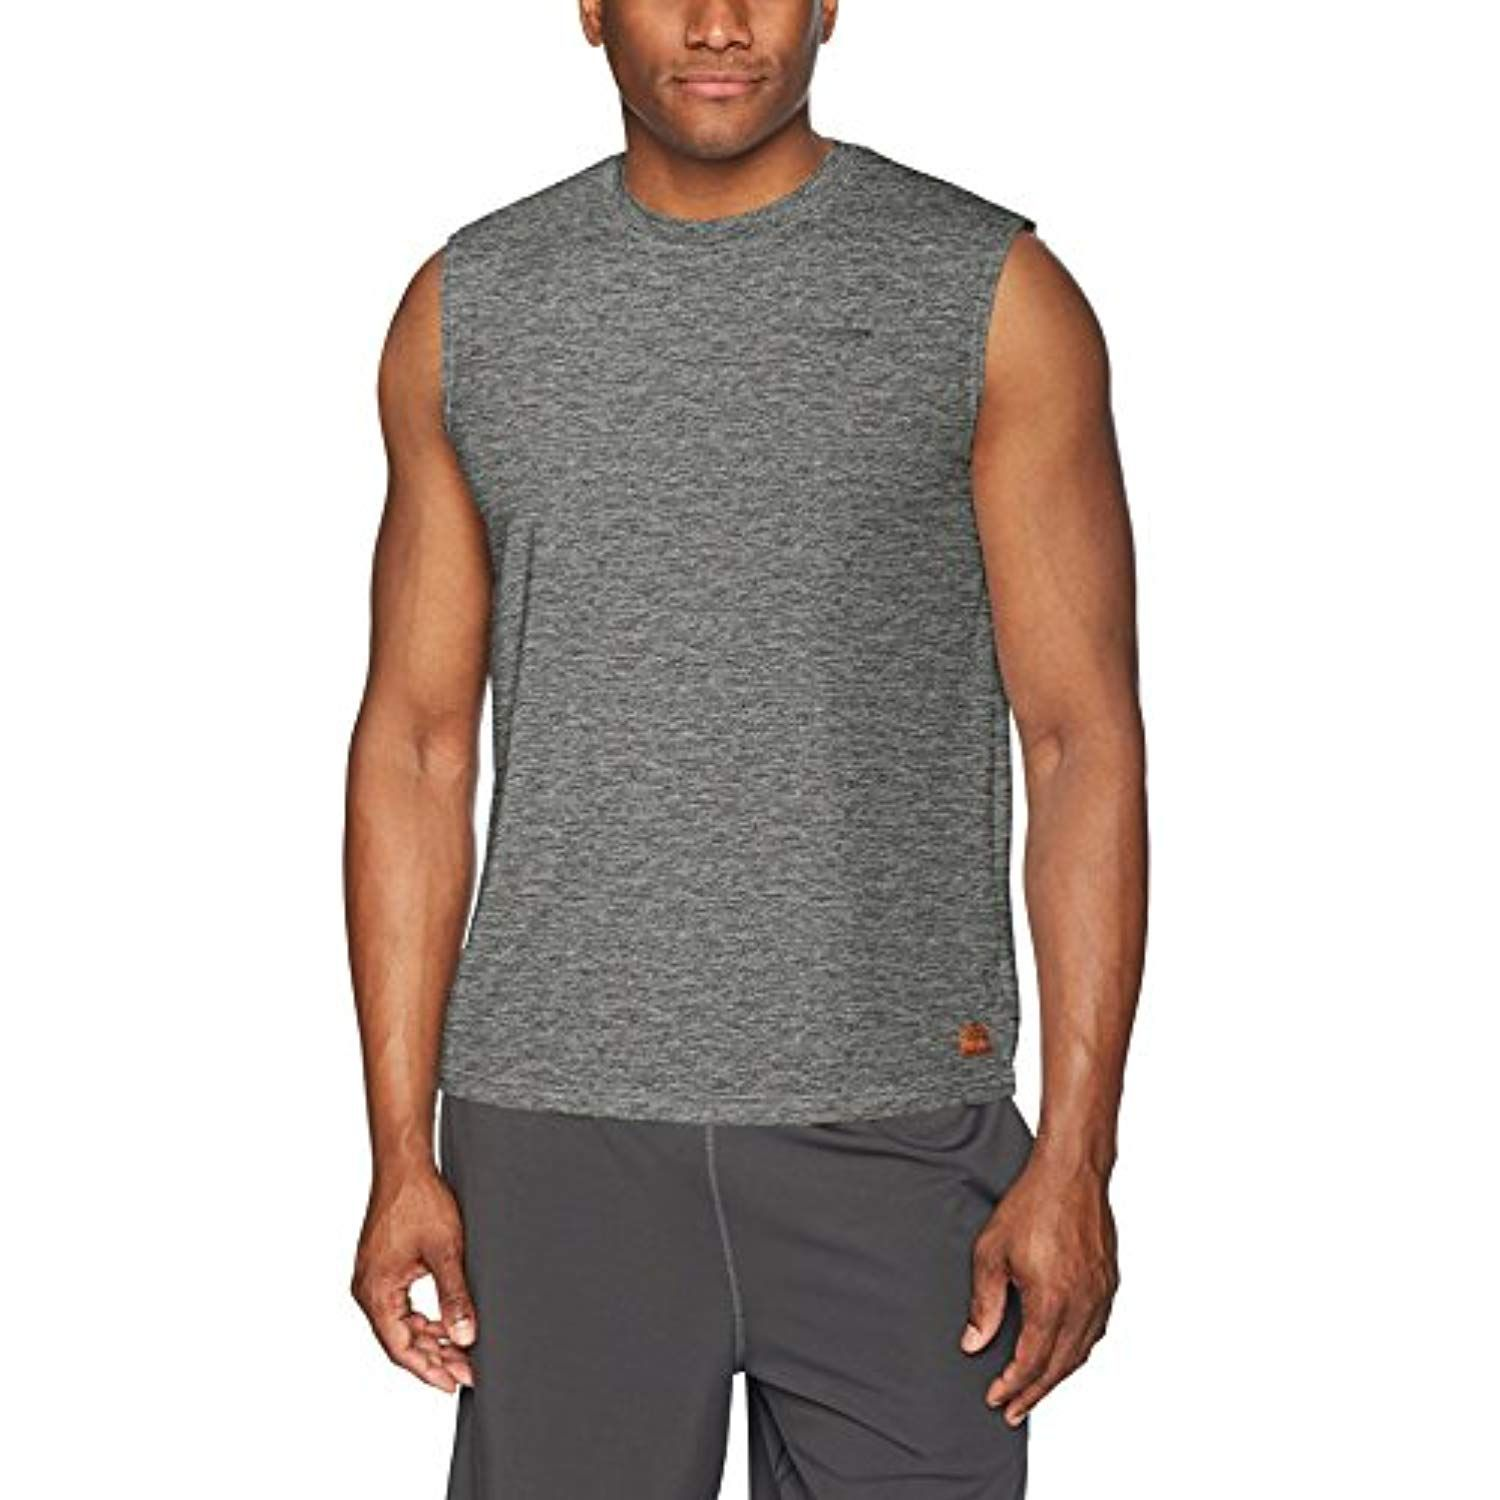 Copper fit mens base layer compression tank top you